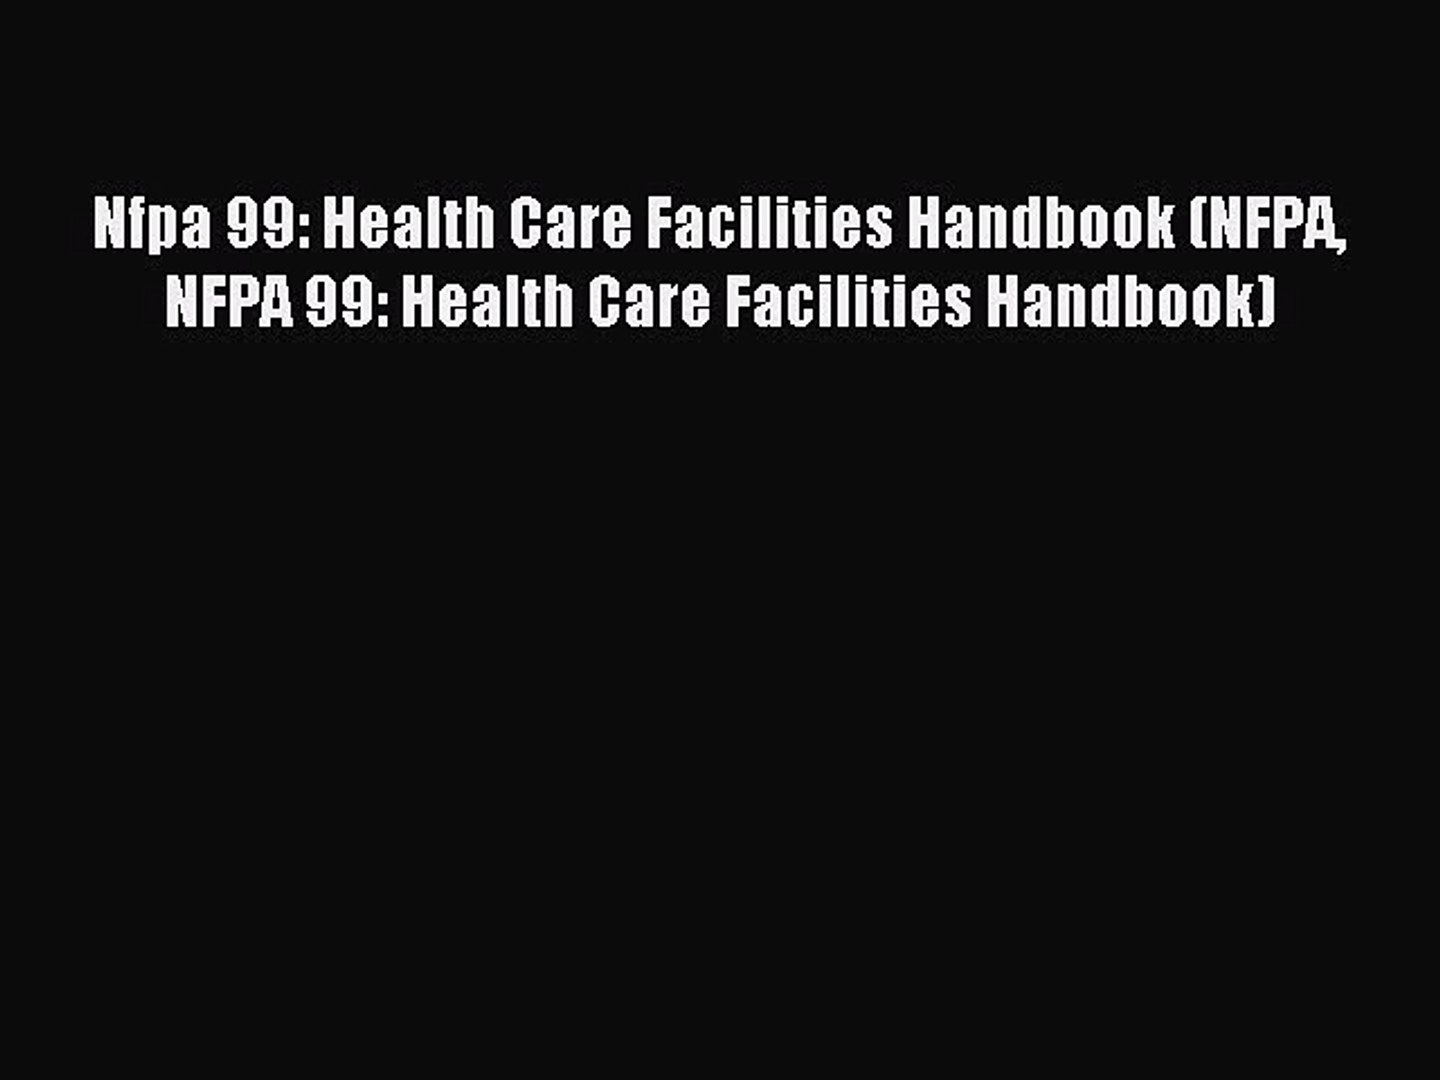 Read Nfpa 99: Health Care Facilities Handbook (NFPA NFPA 99: Health Care Facilities Handbook)